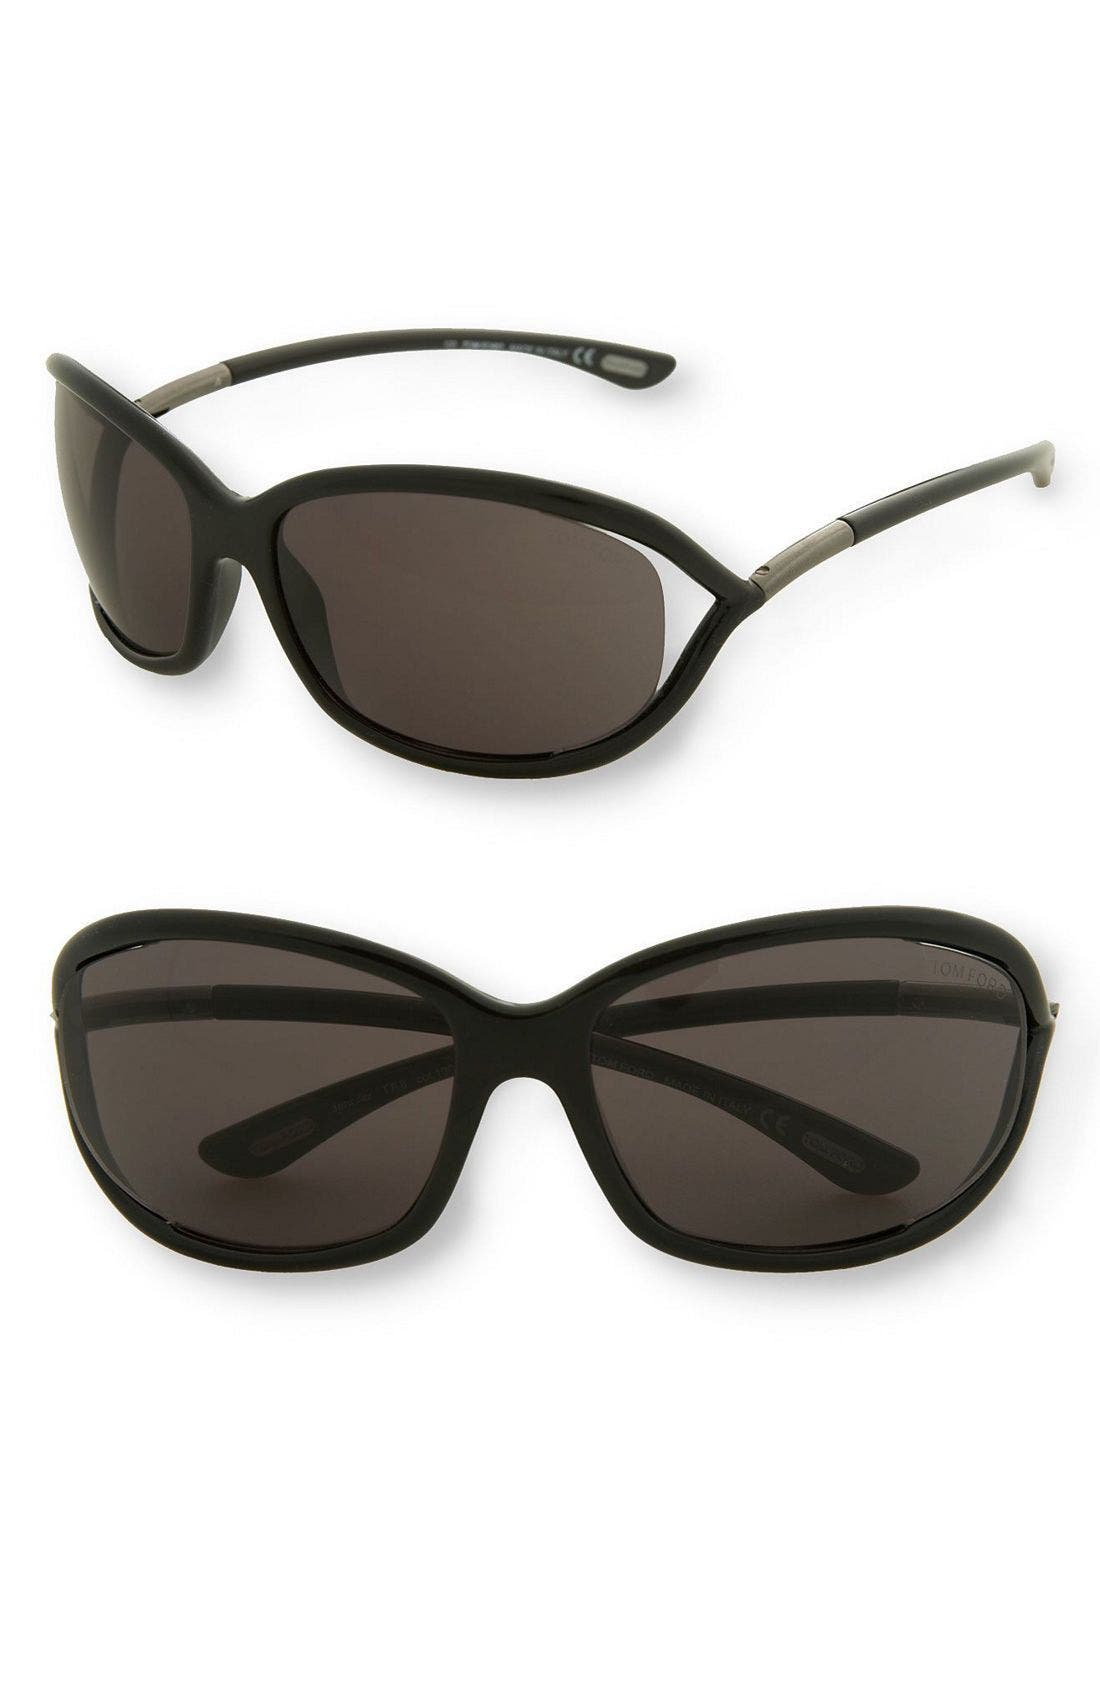 Main Image - Tom Ford 'Jennifer' 61mm Oval Oversize Frame Sunglasses